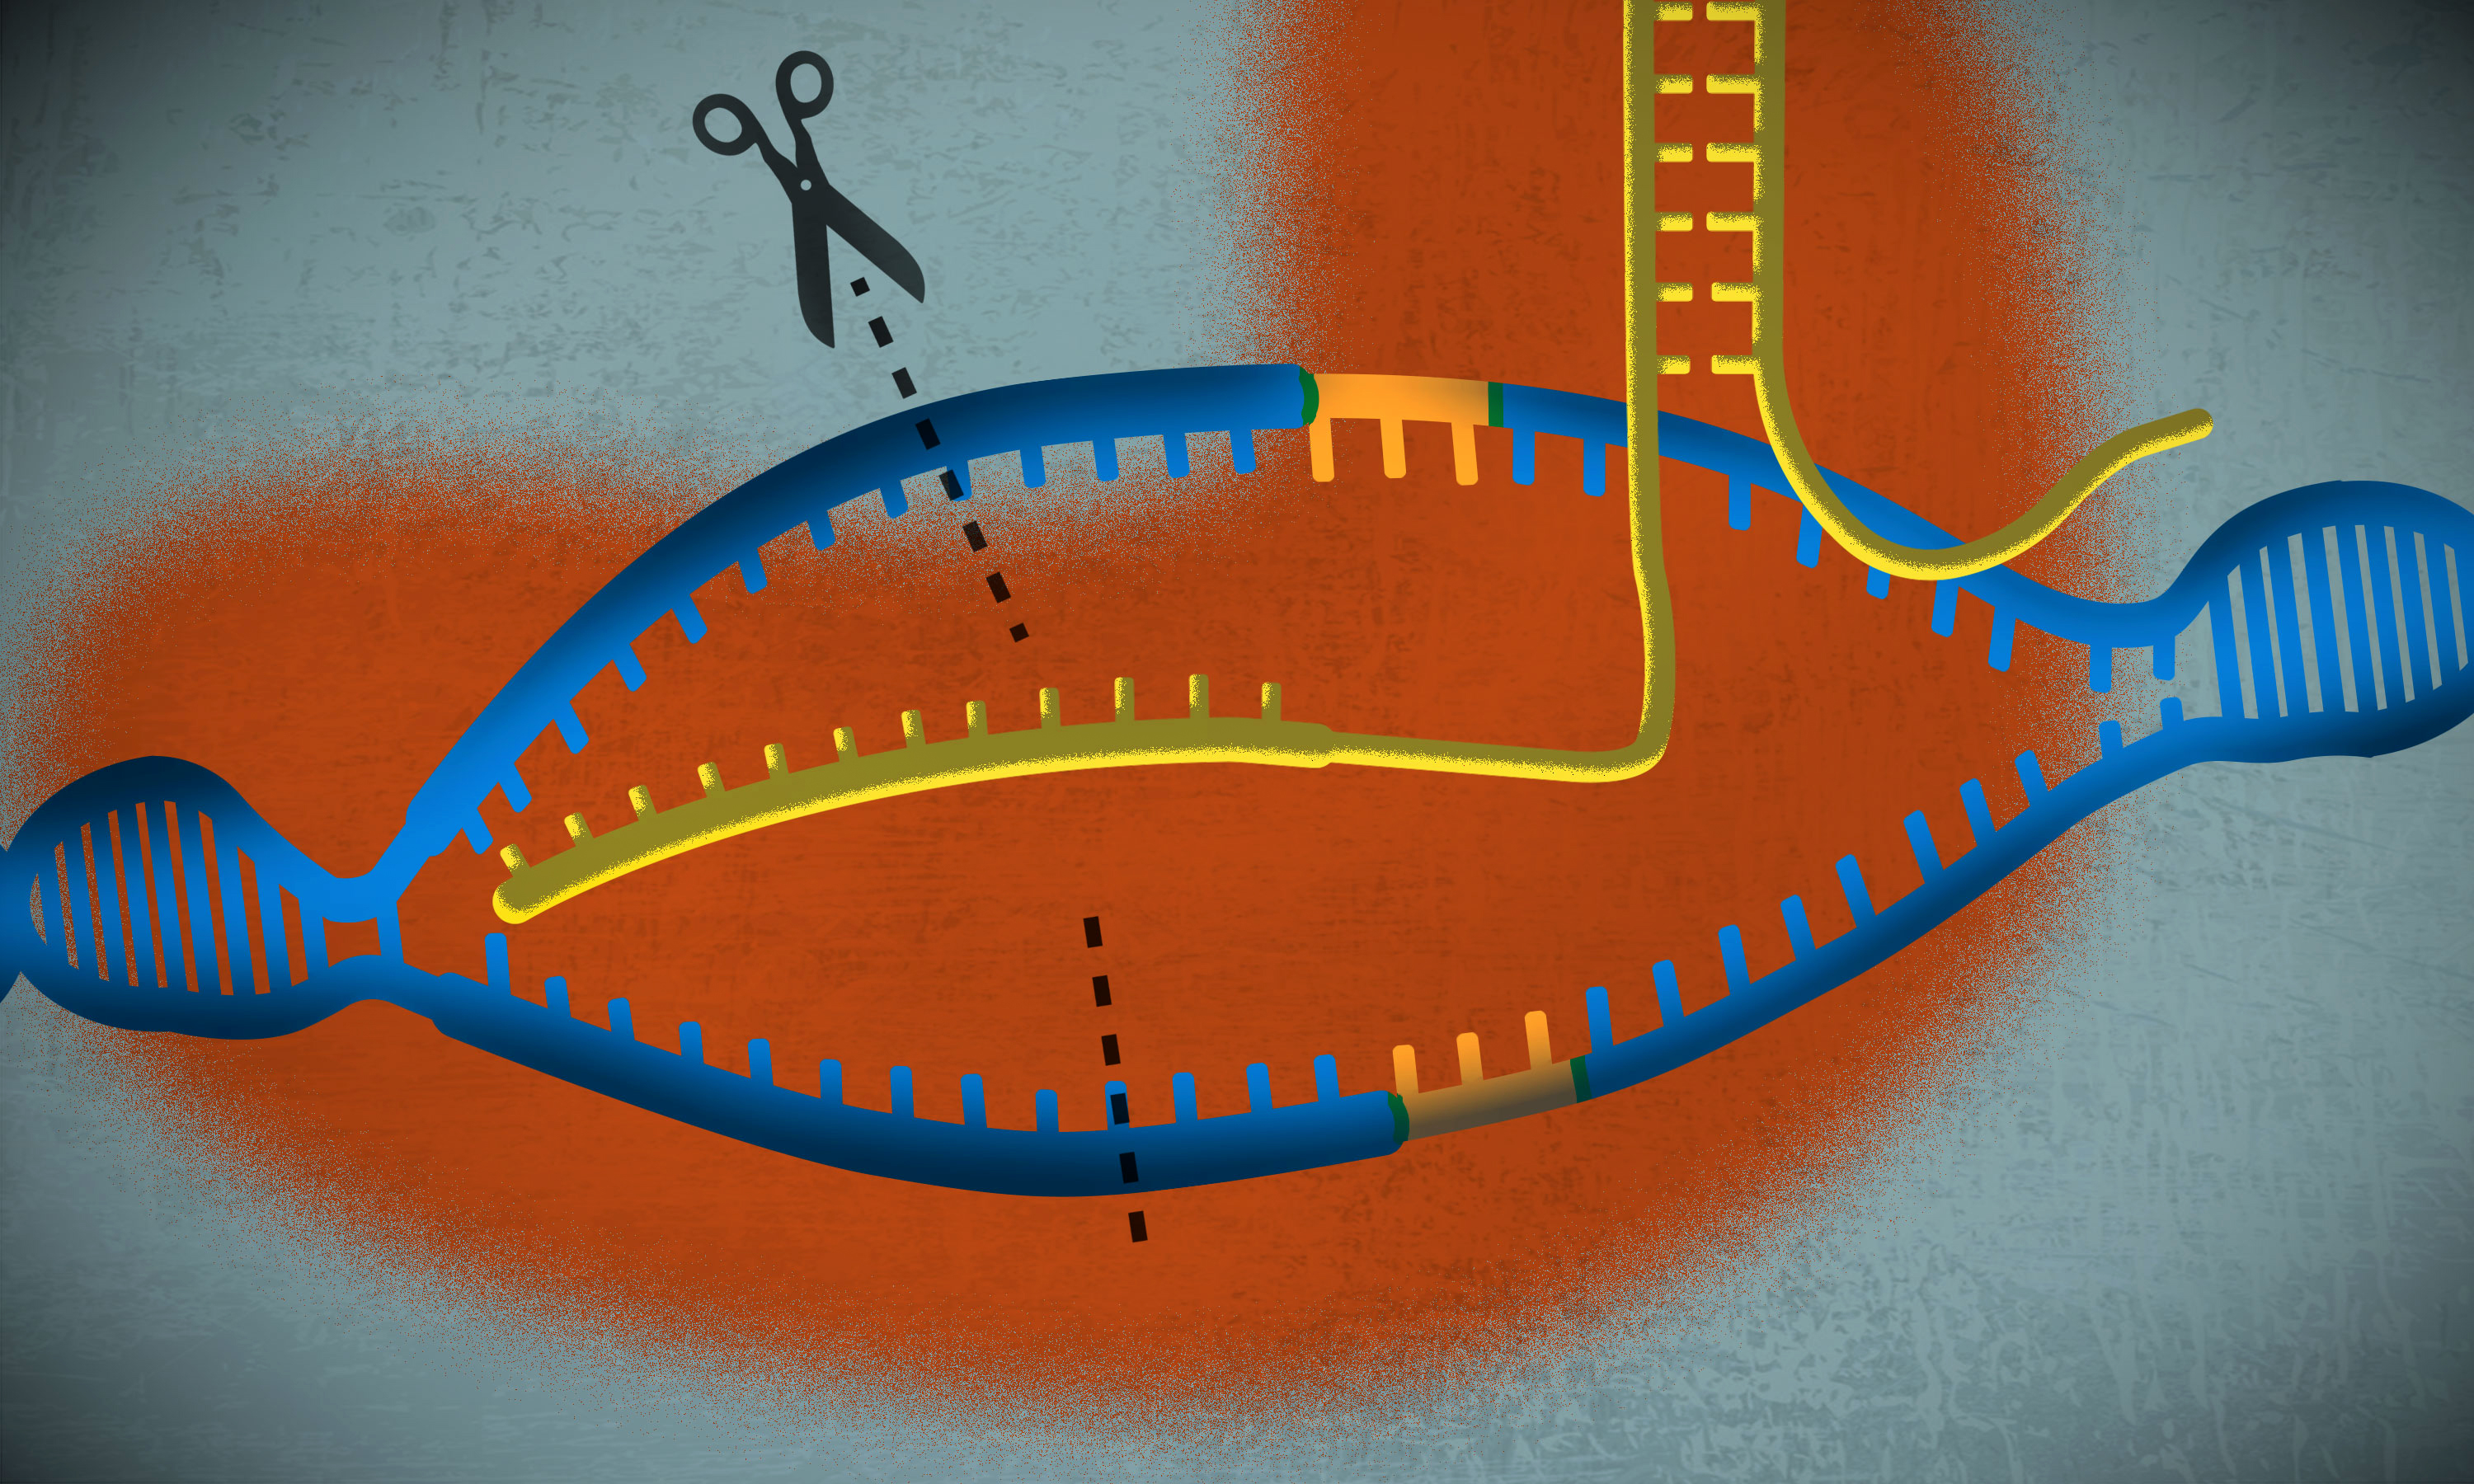 CRISPR, one of the biggest science stories of the decade, explained